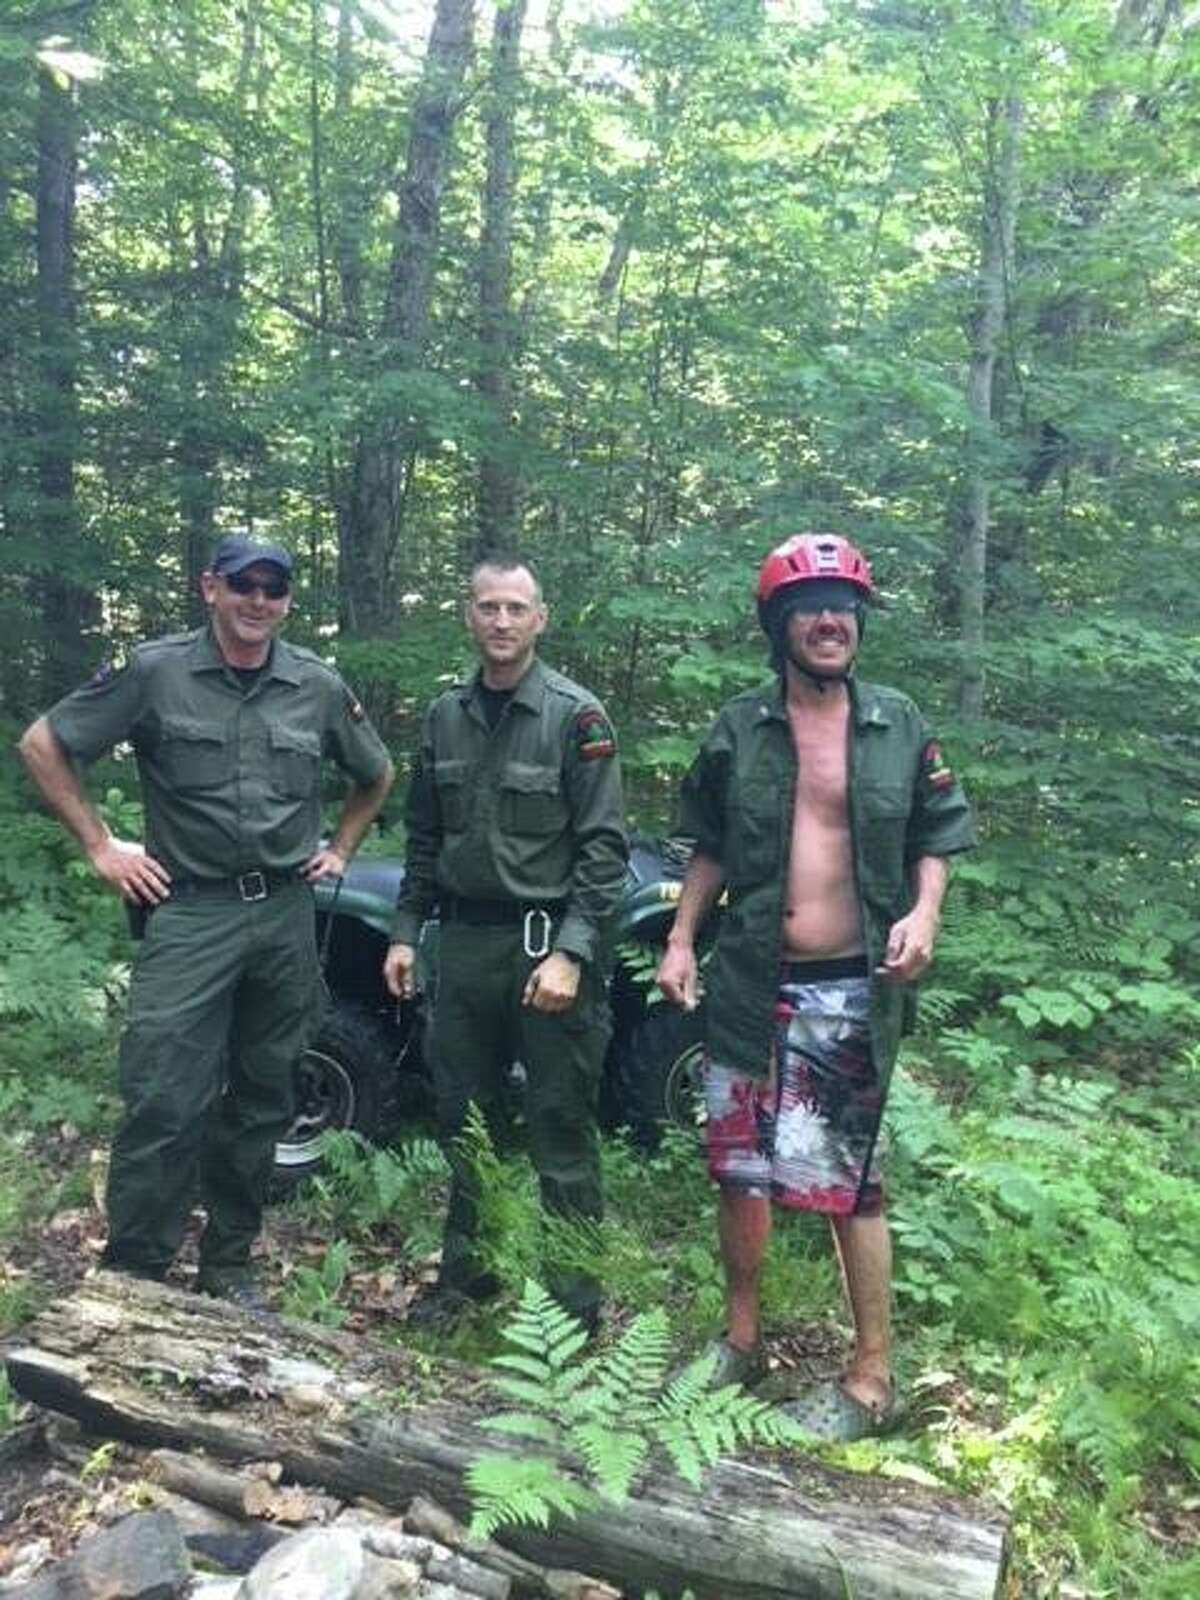 State Department of Environmental Conservation rangers Jay Scott, Evan Donegan, Ian Kerr and Gary Miller joined dozens who helped to find lost hiker Bruce Williams on Monday, July 2, 2018, on Chase Lake in the town of Bleecker, Fulton County. (NYS Department of Environmental Conservation via Facebook)